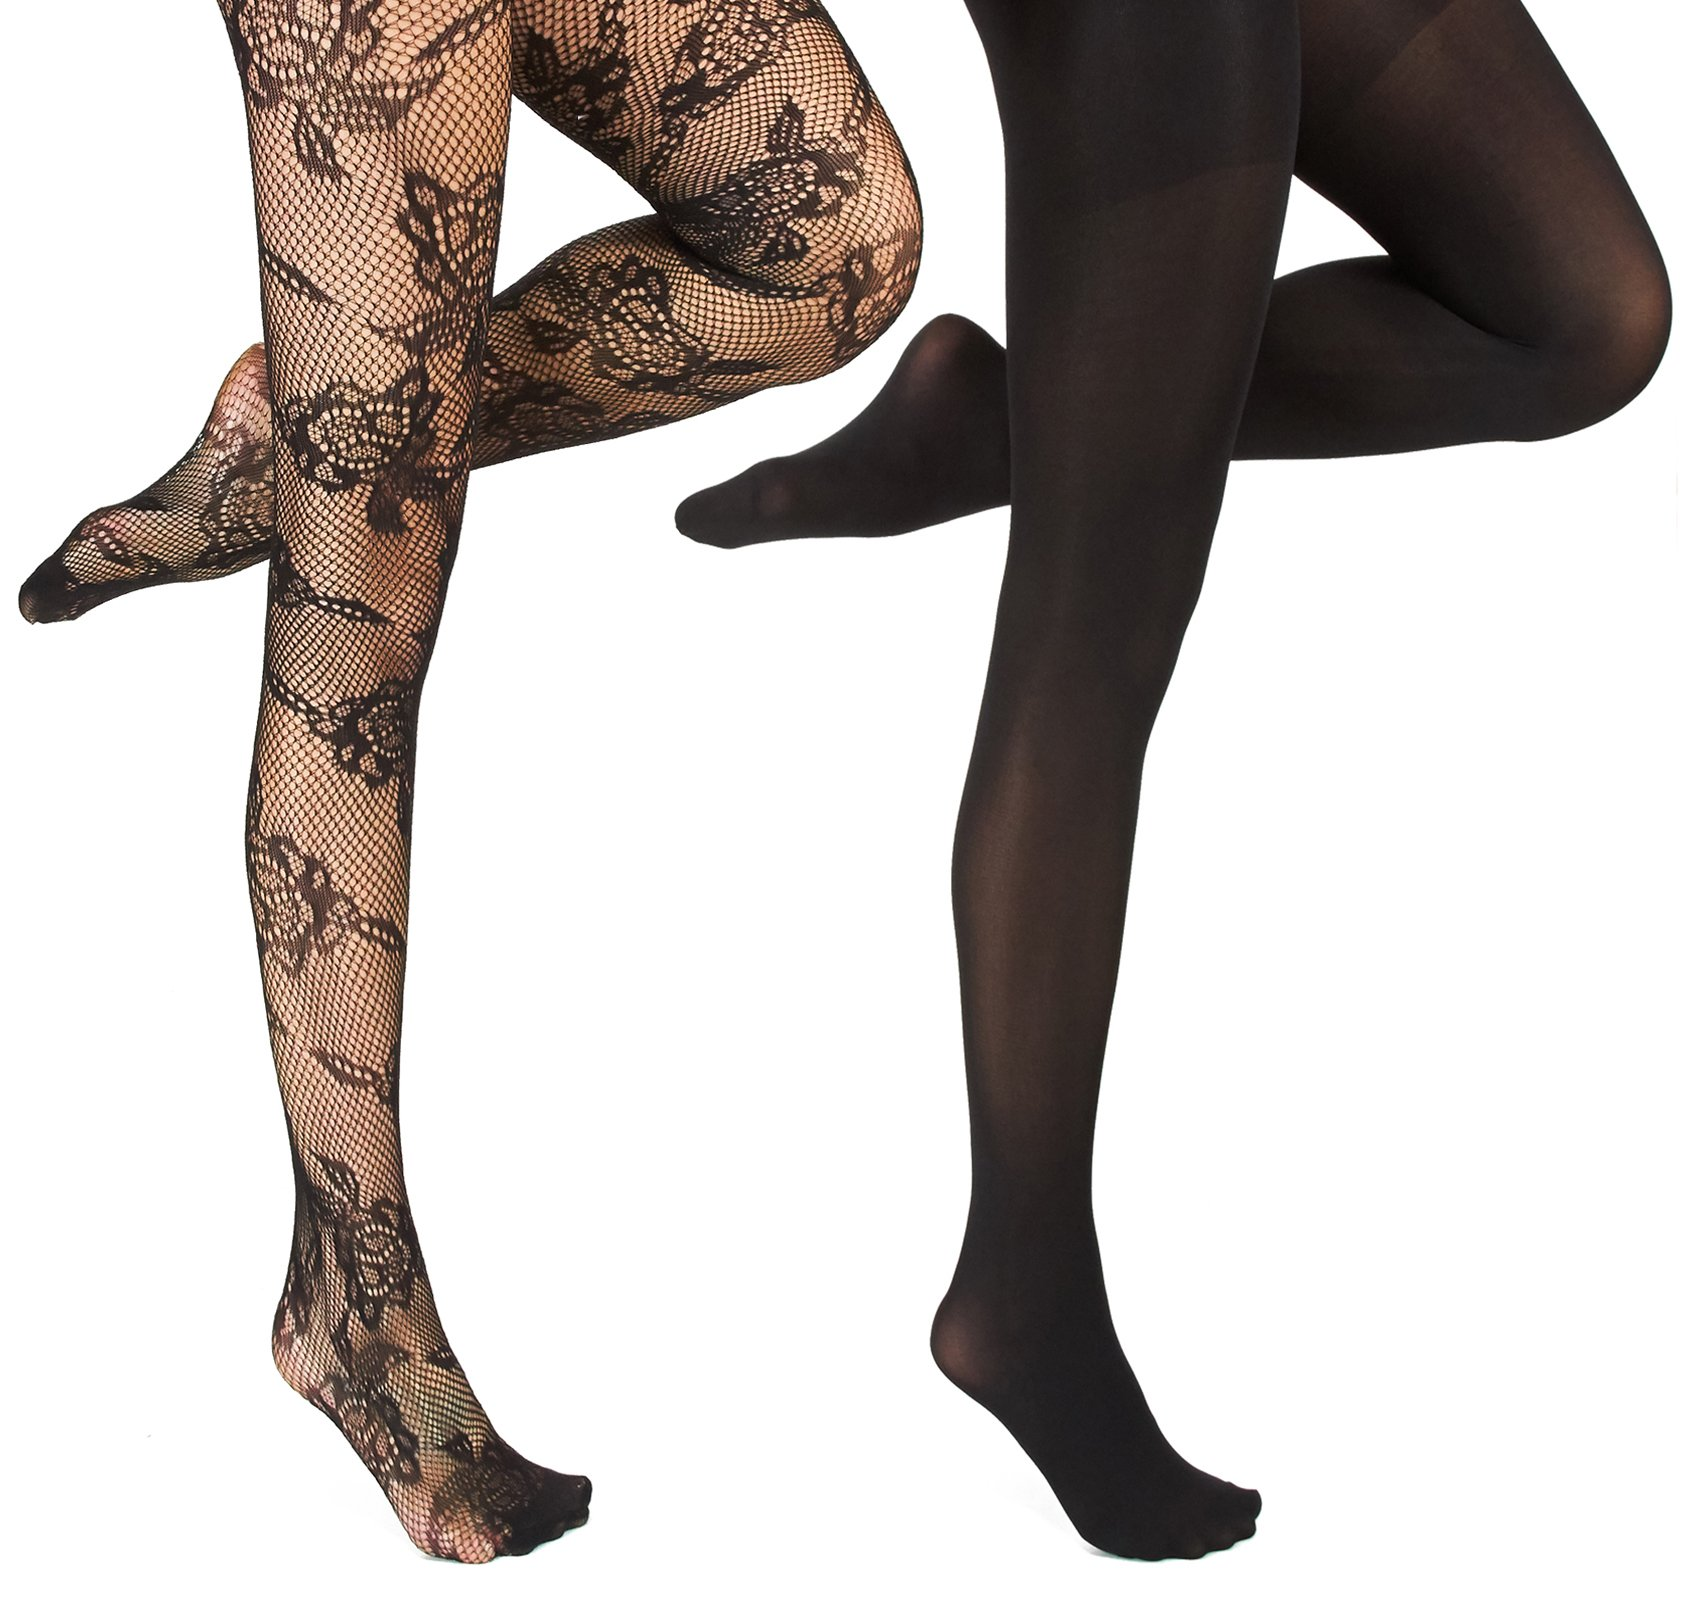 Marilyn Monroe Womens Ladies 2Pack Black Floral Fishnet Tights With Solid Opaque 1X/2X